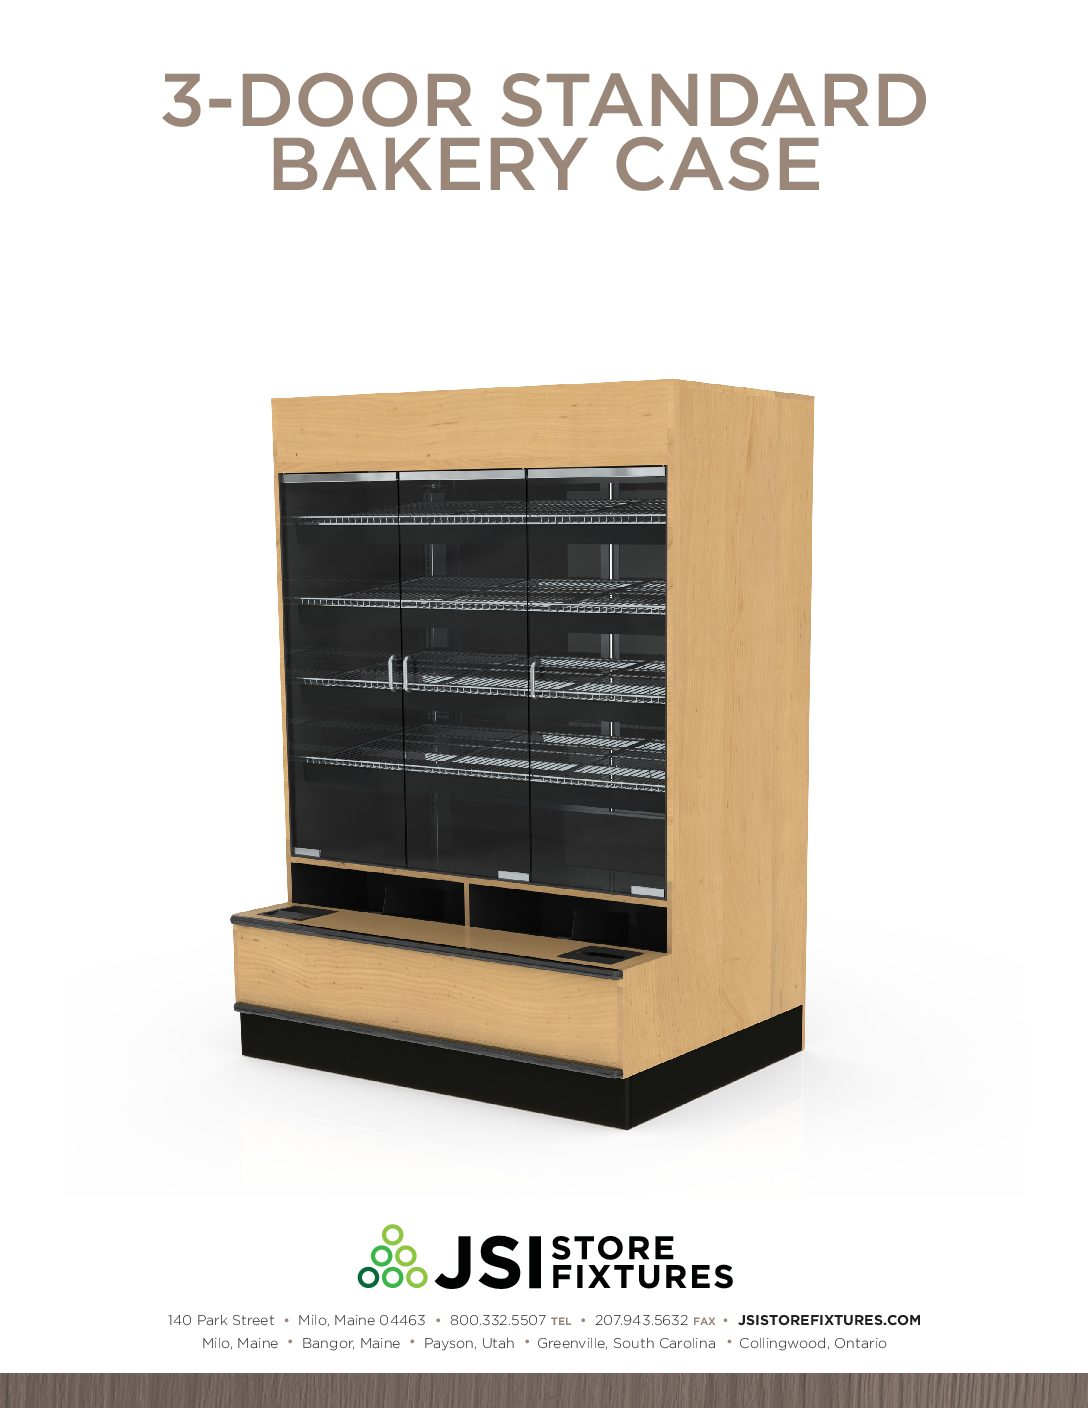 3-Door Standard Bakery Case Spec Sheet